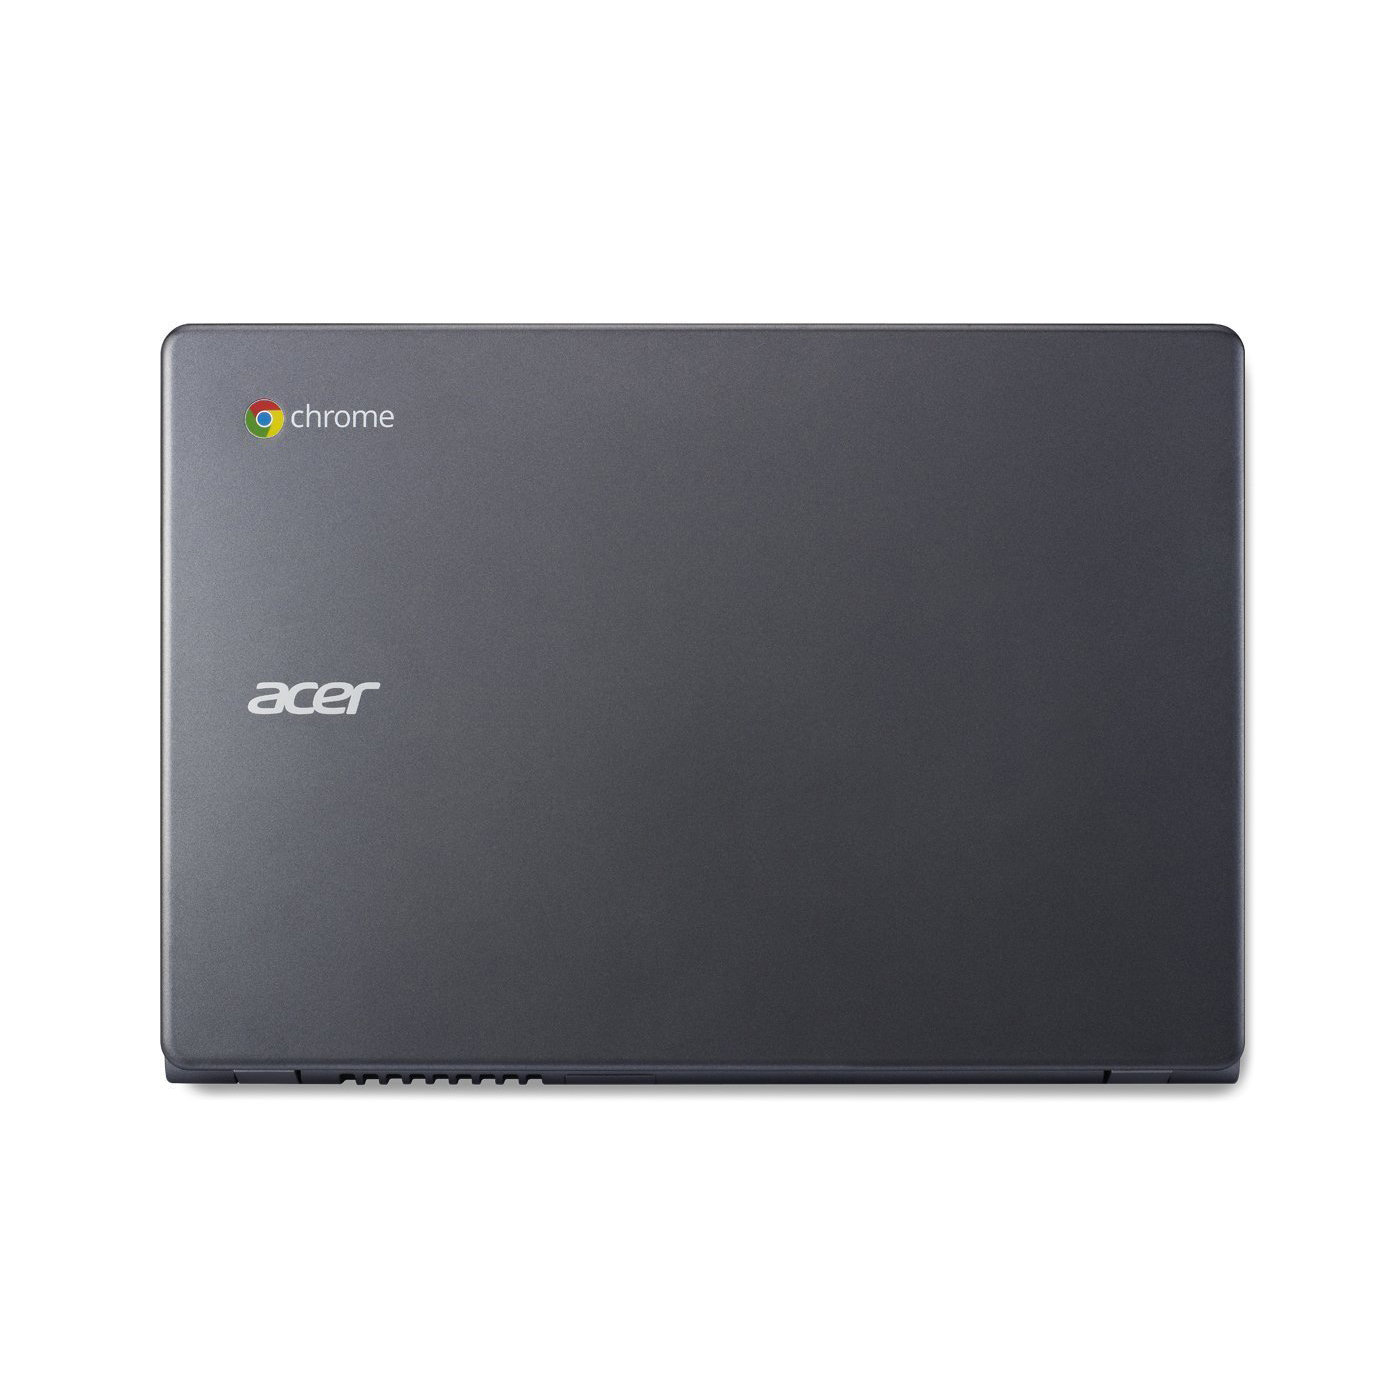 ACER 655A AND OTHERS DRIVER FOR WINDOWS